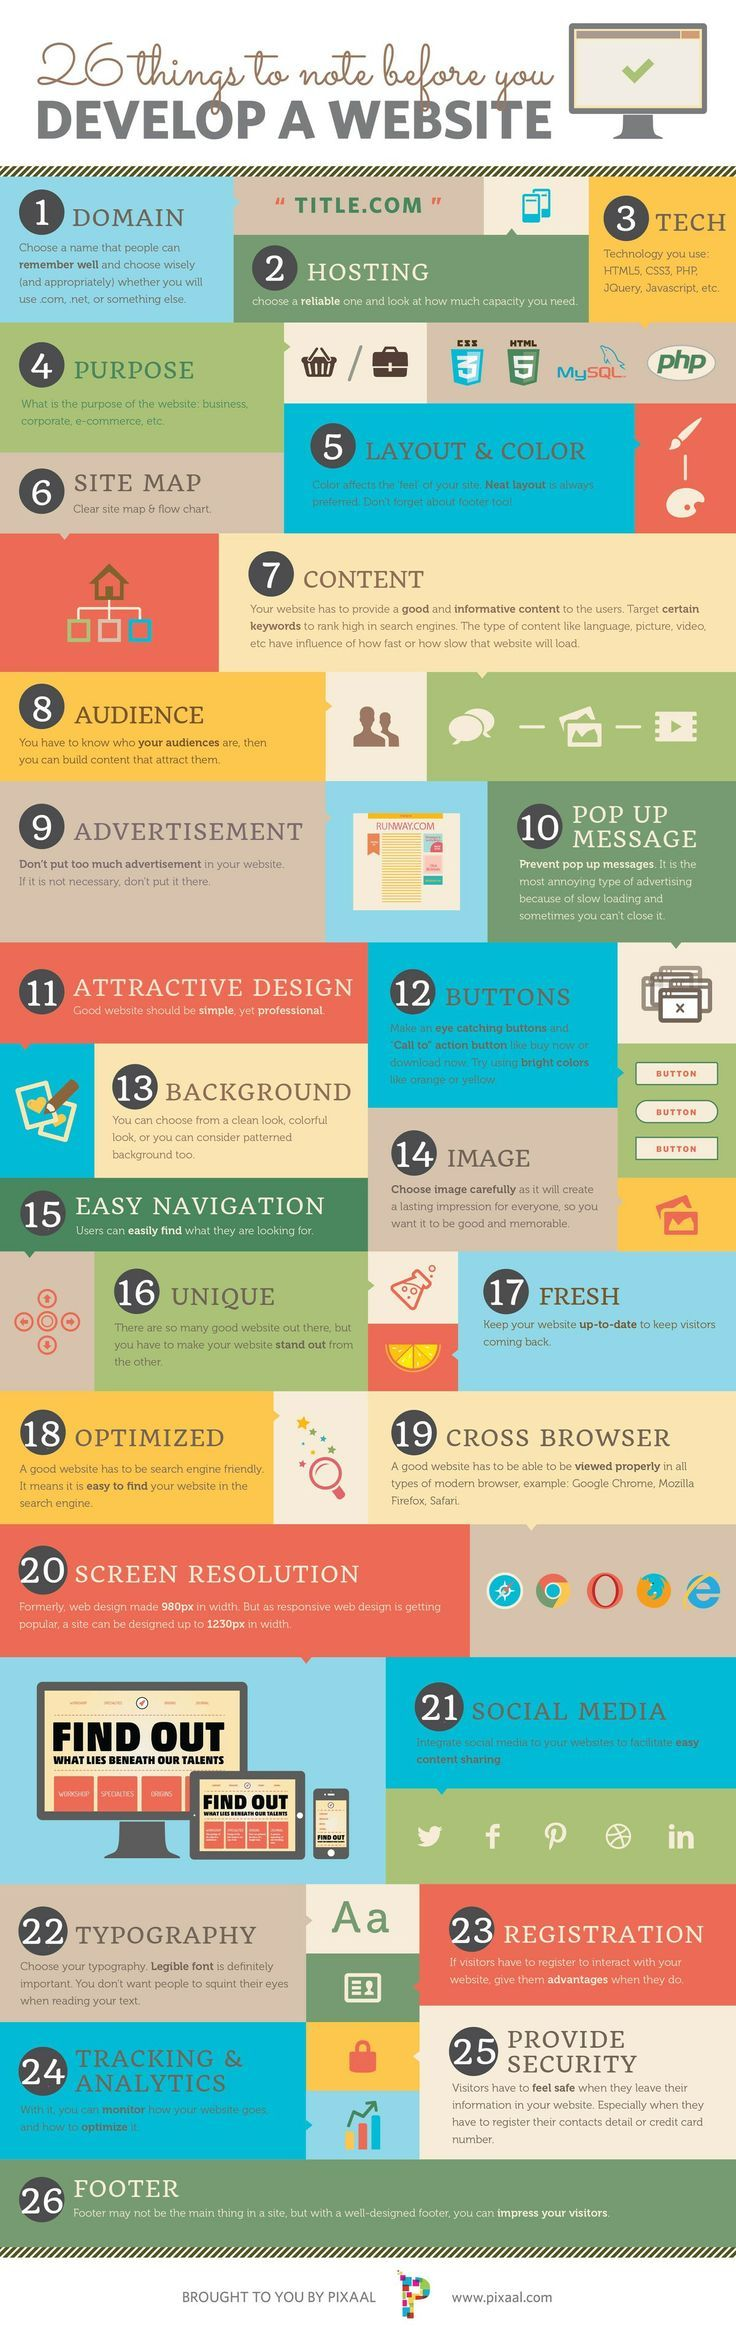 Note this before developing a website